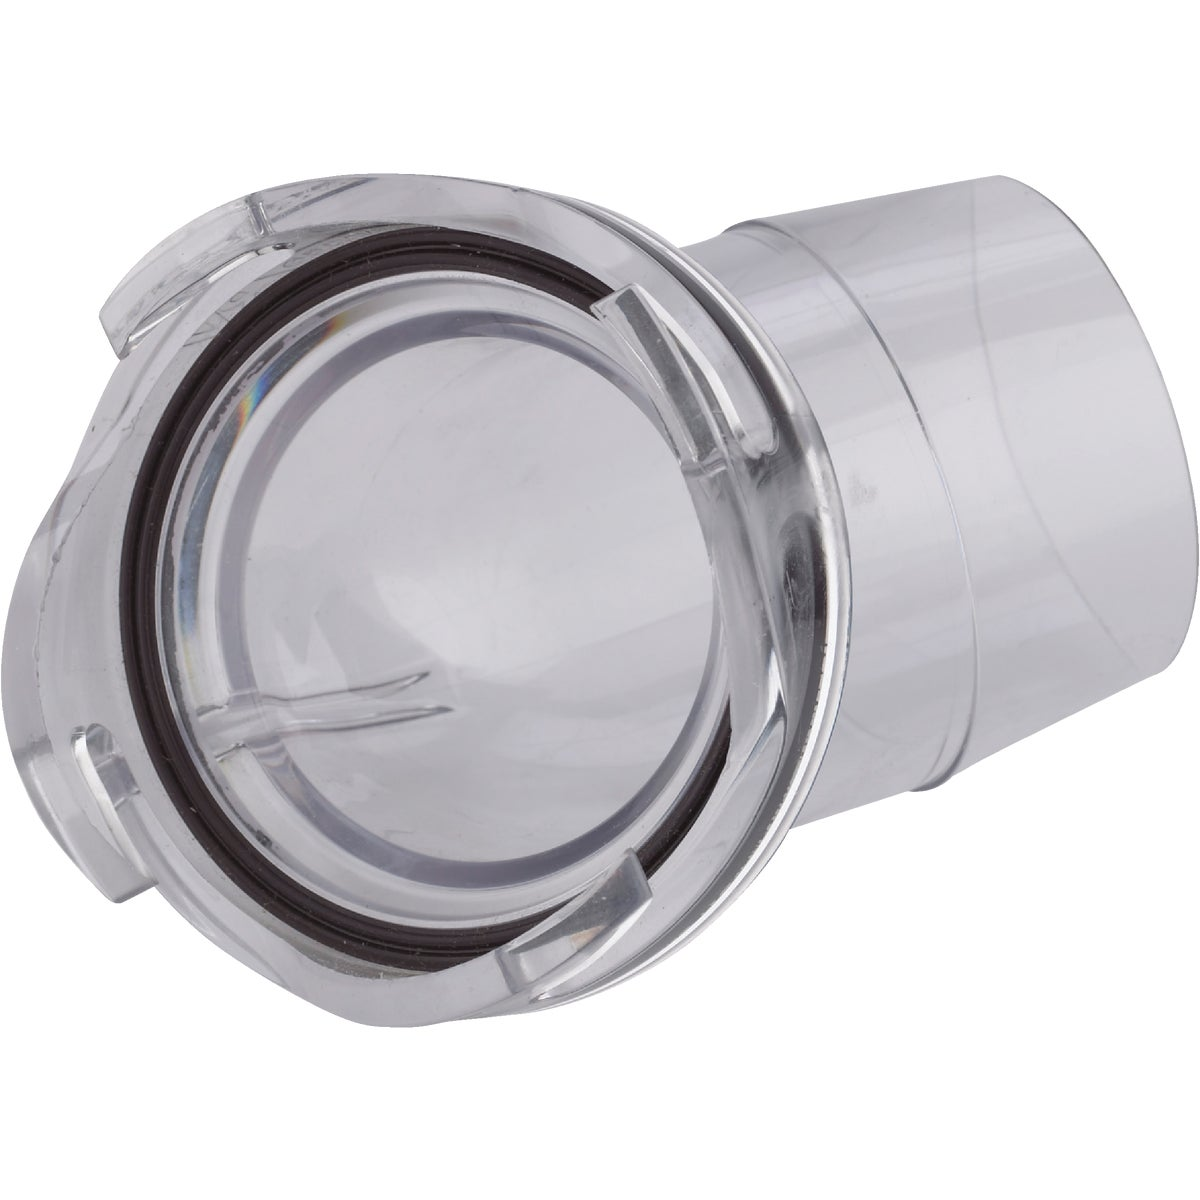 CLEAR 45D HOSE ADAPTER - 39432 by Camco Mfg.